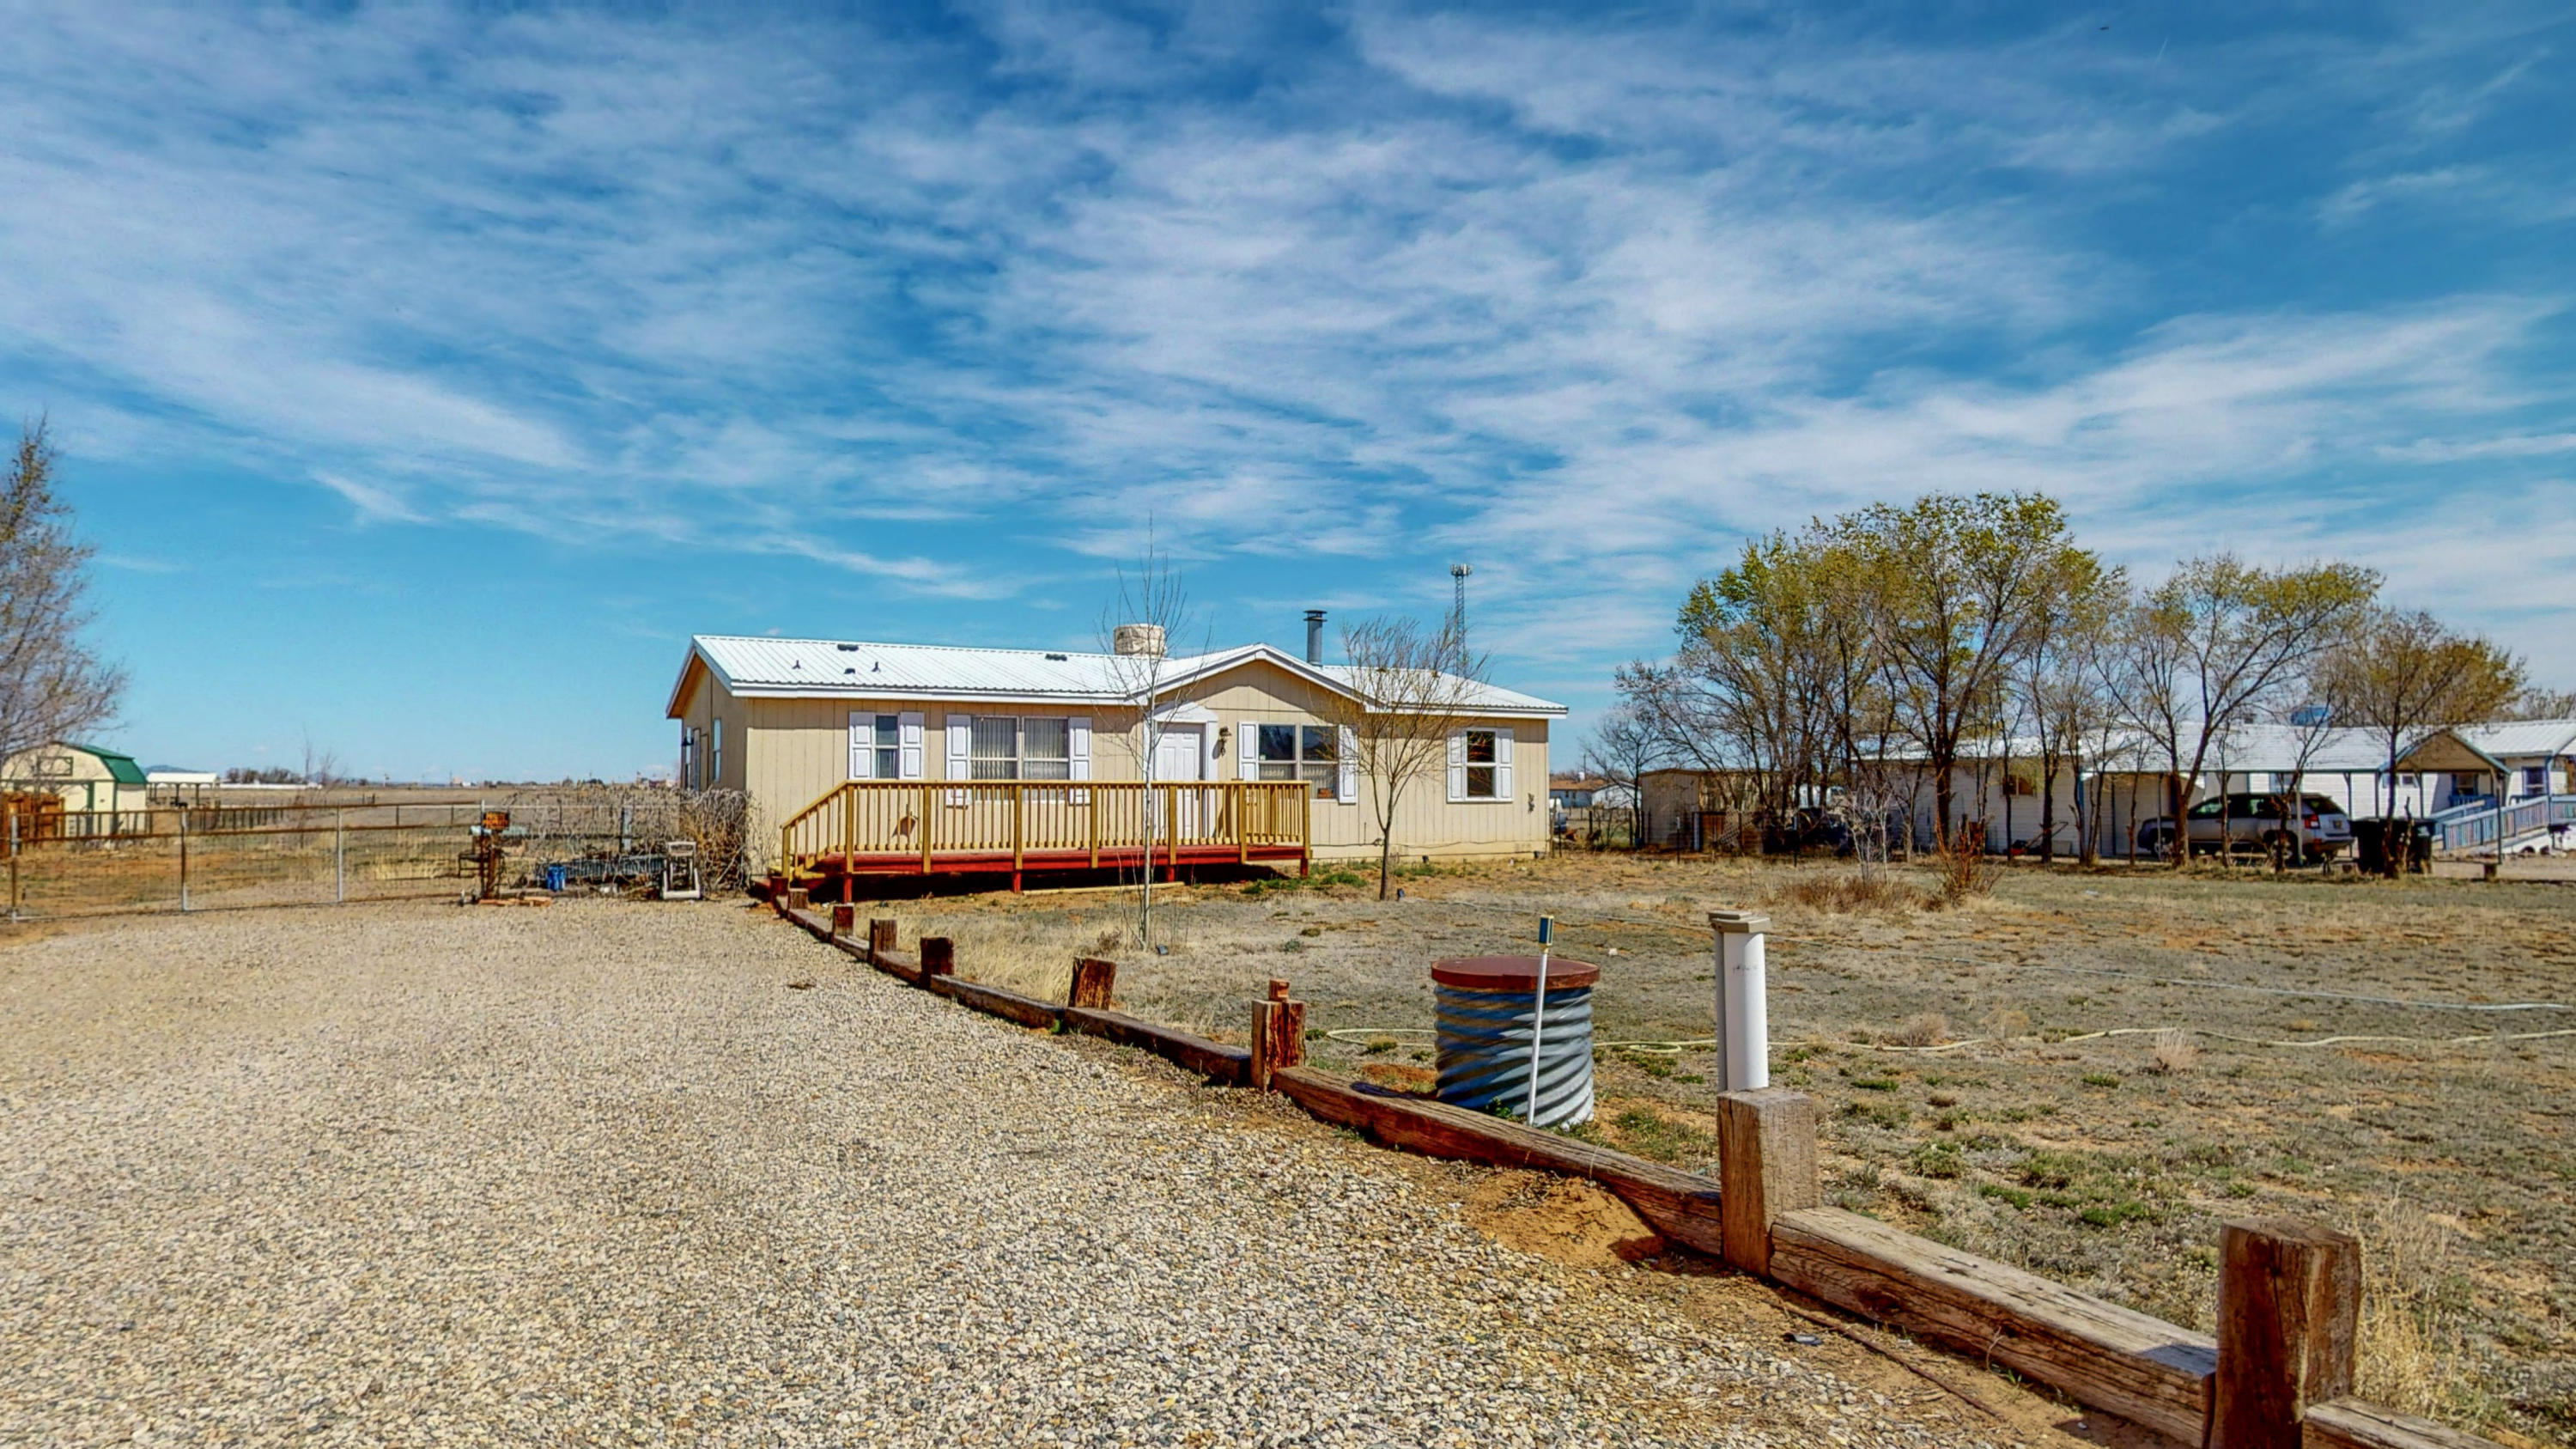 9 SCARLETT OHARA Property Photo - Moriarty, NM real estate listing